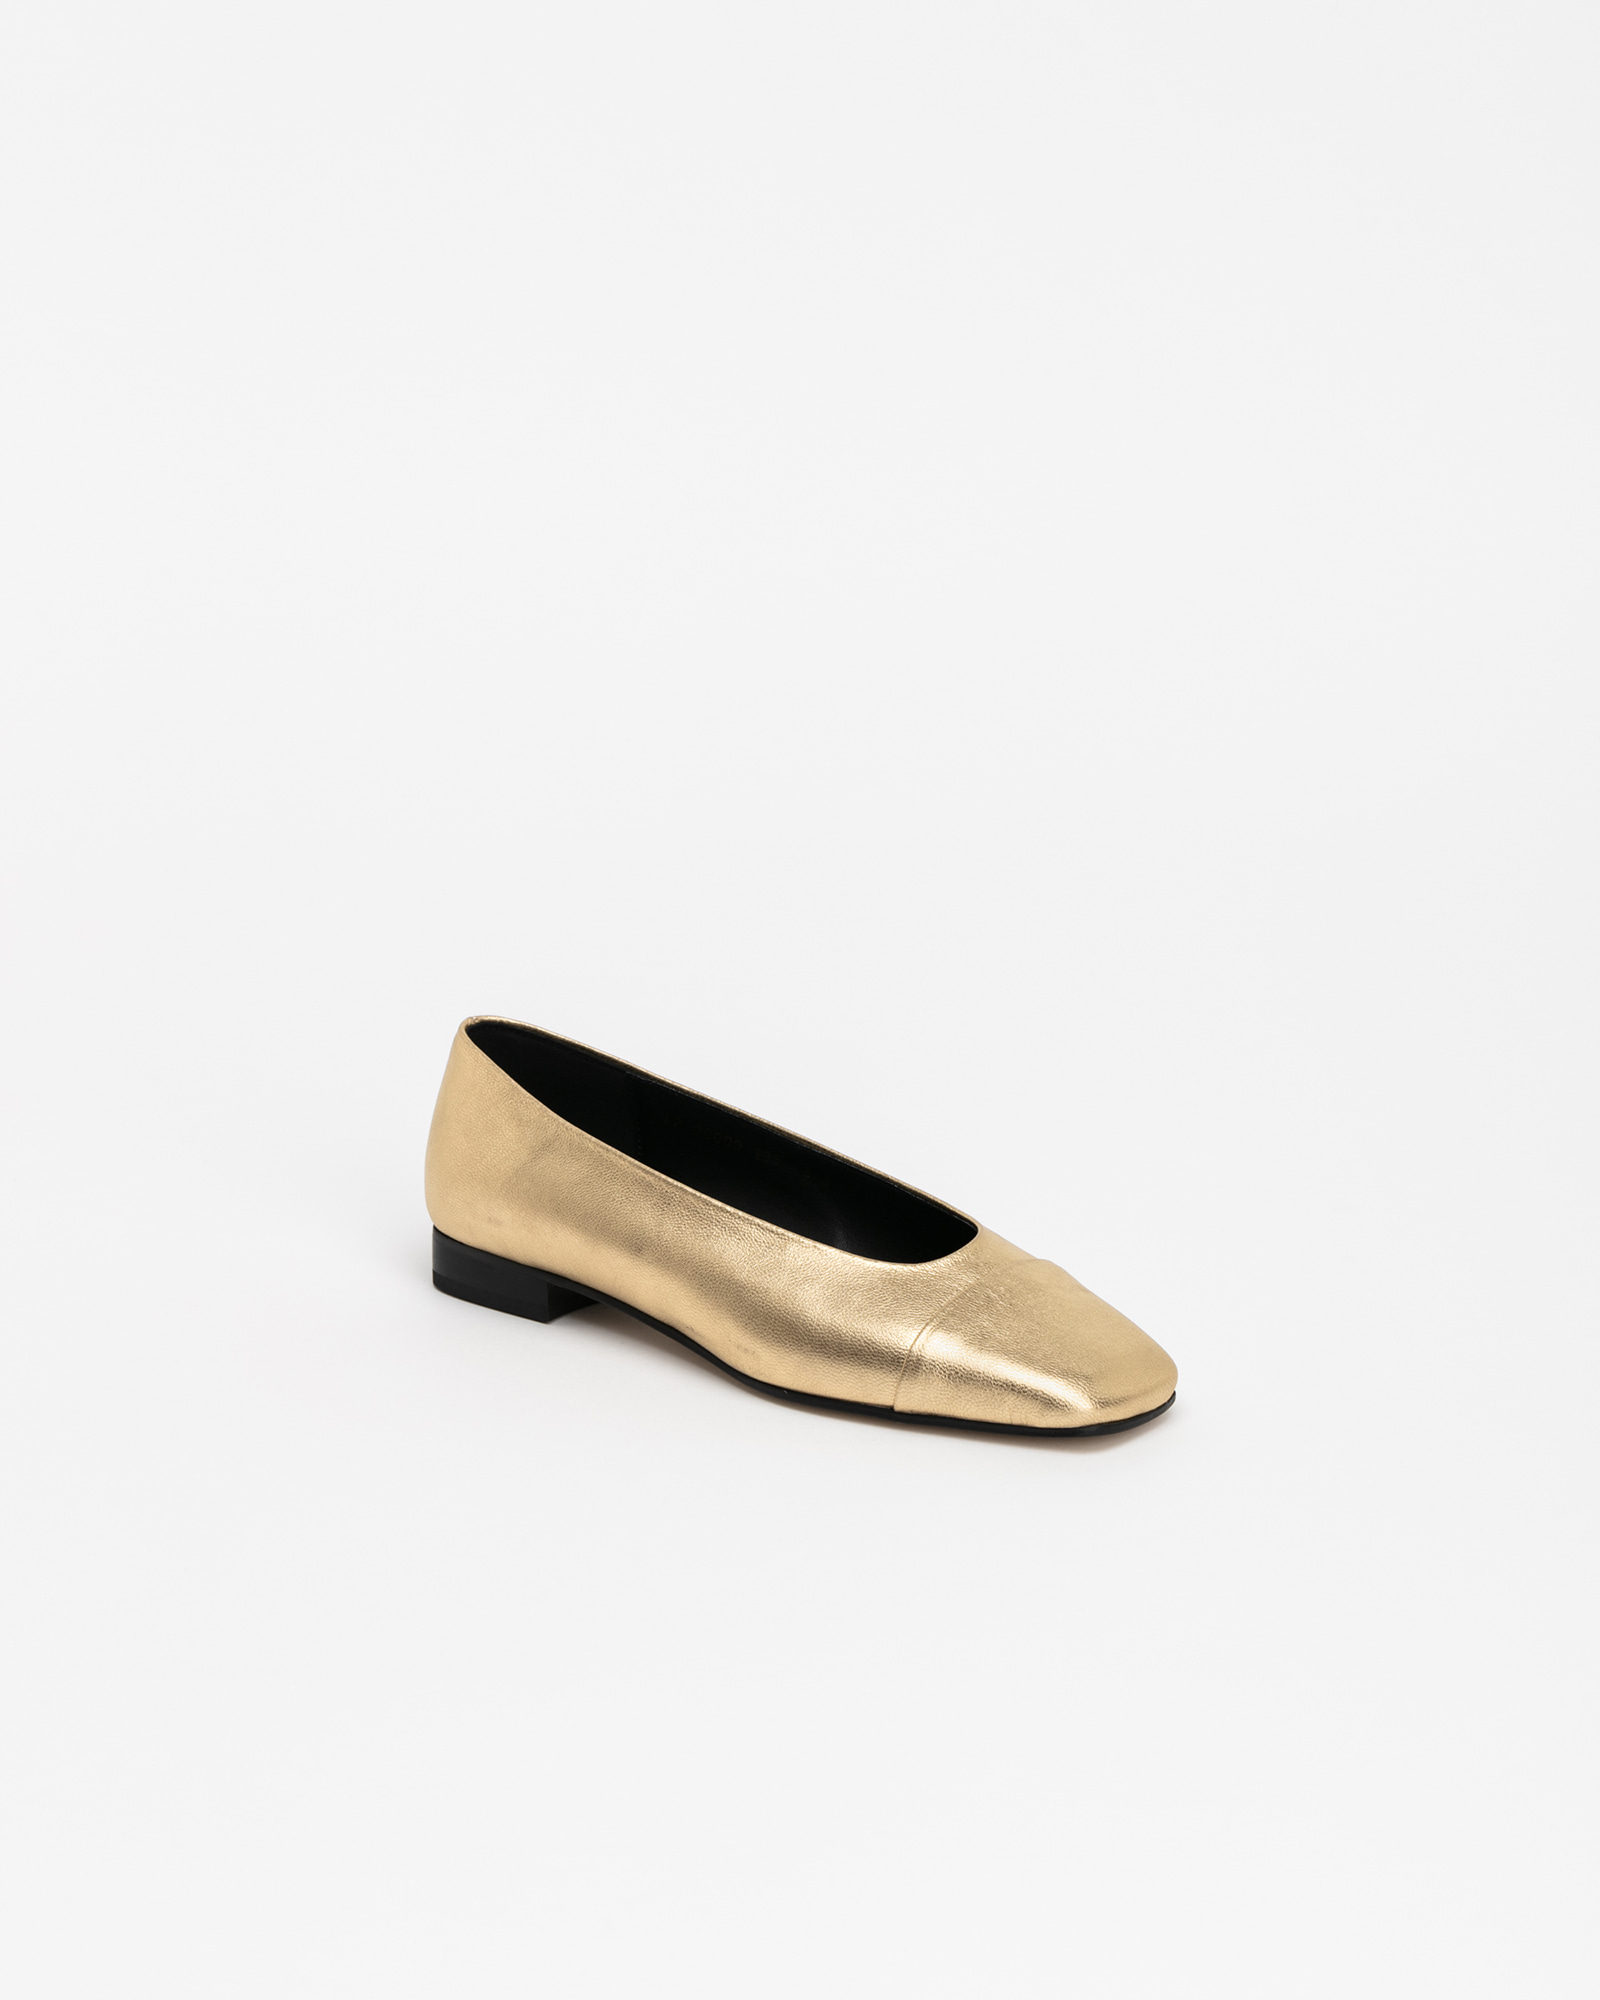 Grazia Flats in Textured Gold